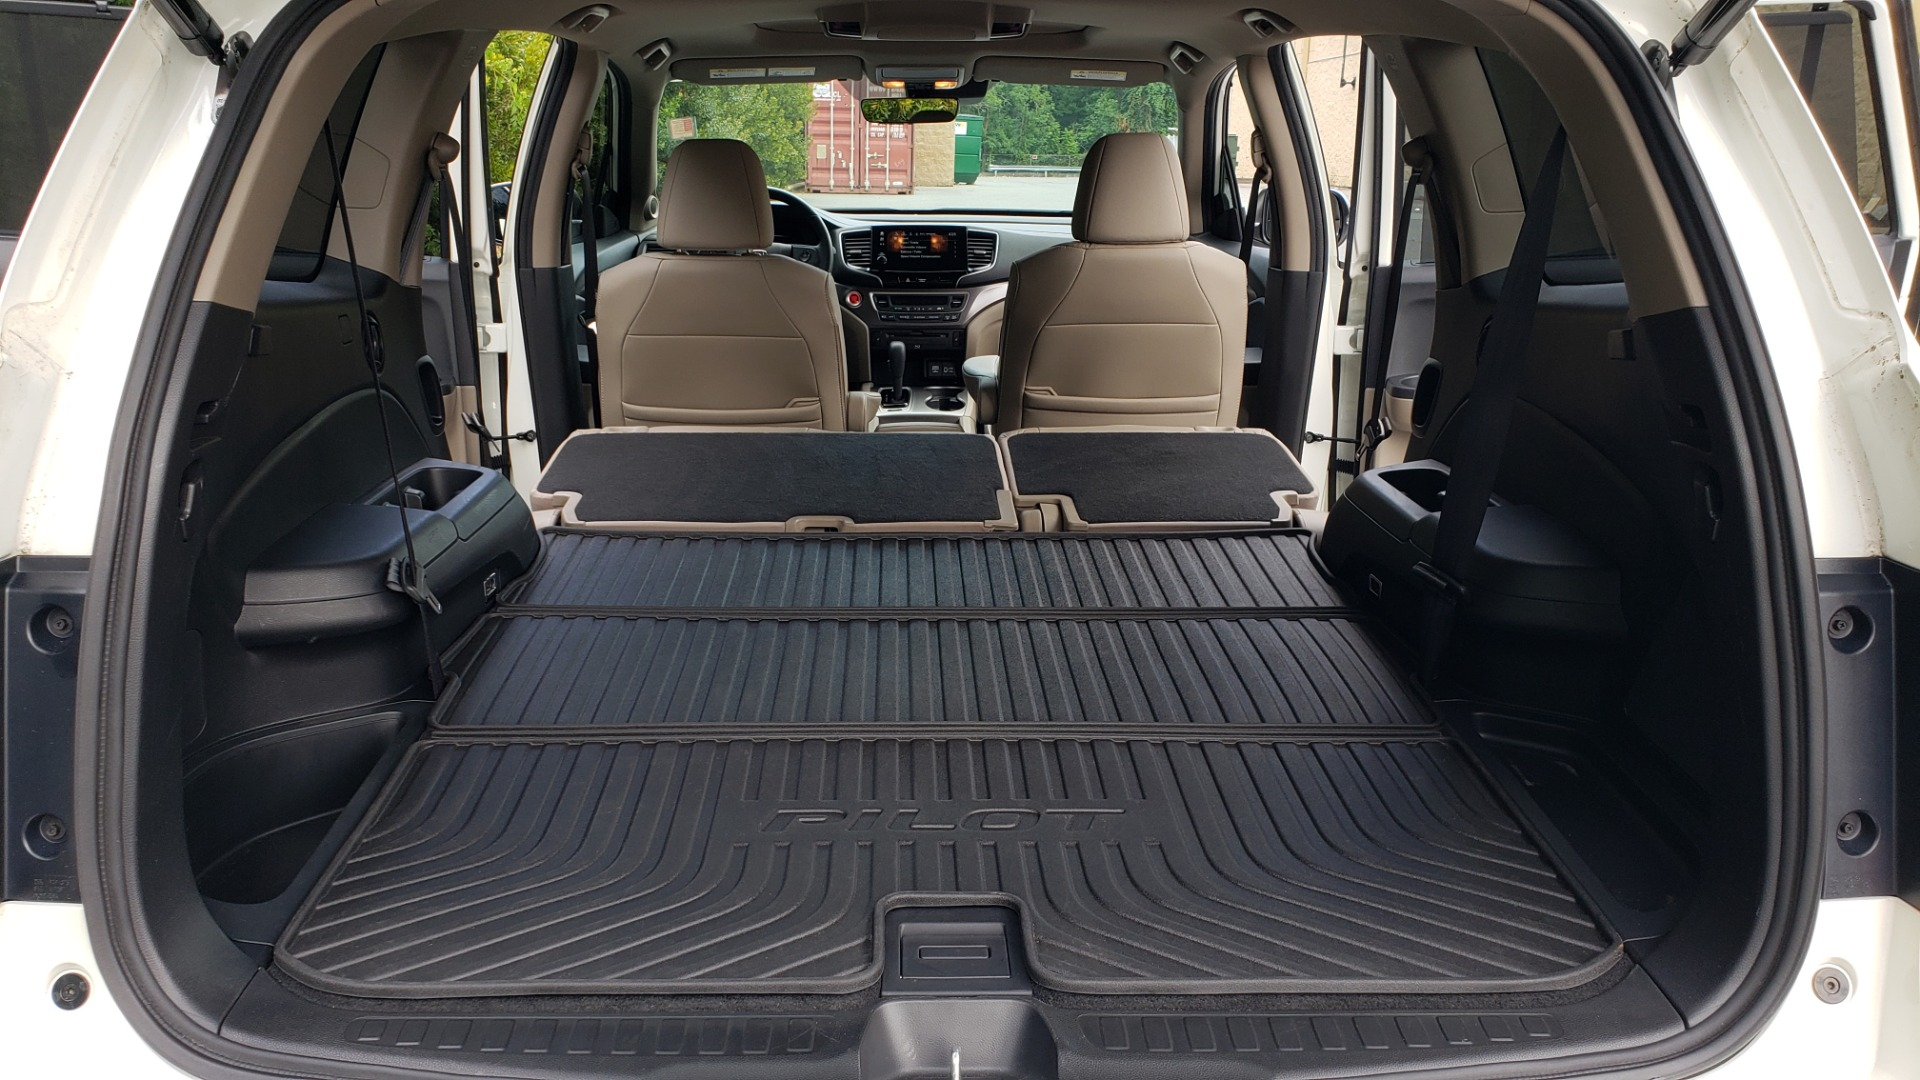 Used 2019 Honda PILOT EX-L / V6 / NAV / SUNROOF / DVD / 3-ROW / REARVIEW for sale Sold at Formula Imports in Charlotte NC 28227 19